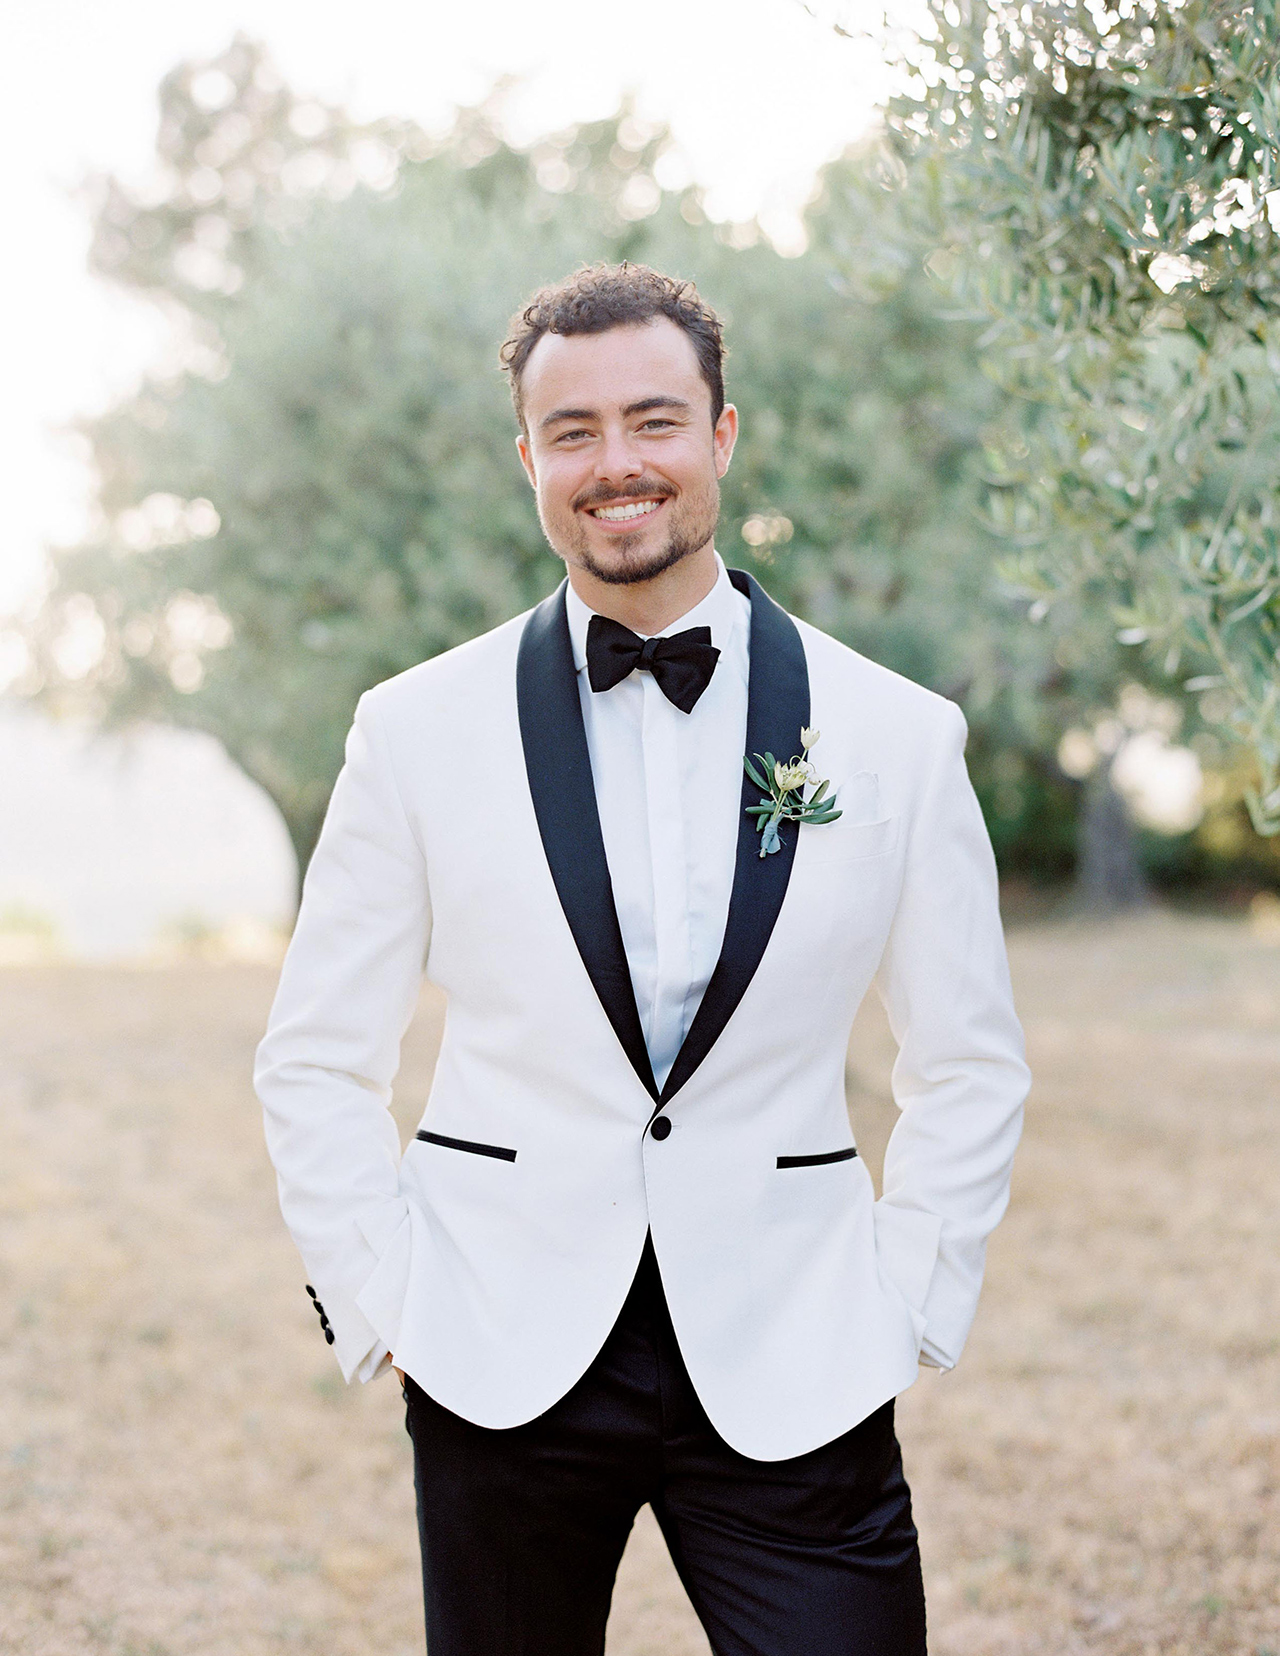 groom posing in white jacket tuxedo